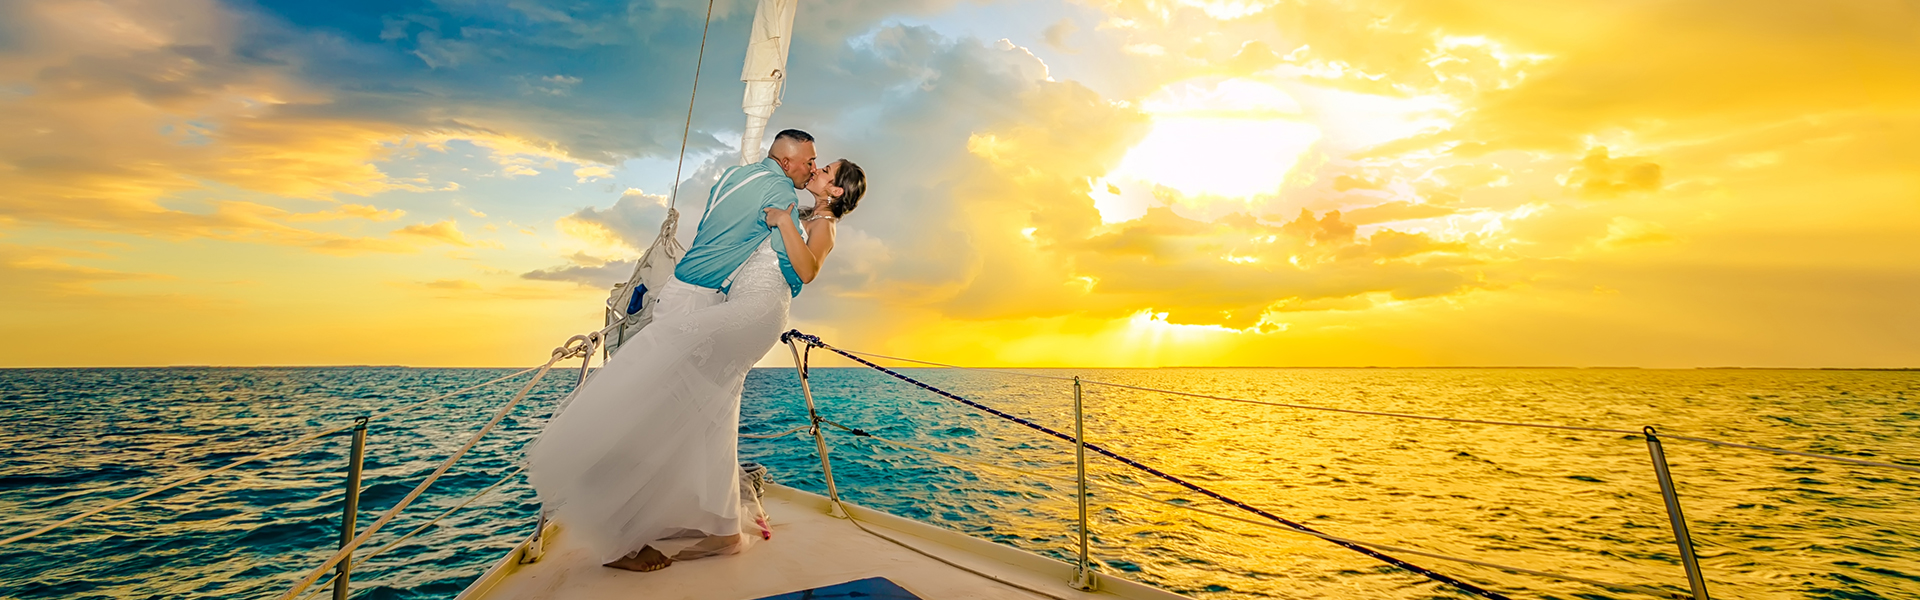 SUNSET LOVE ON A SAILBOAT